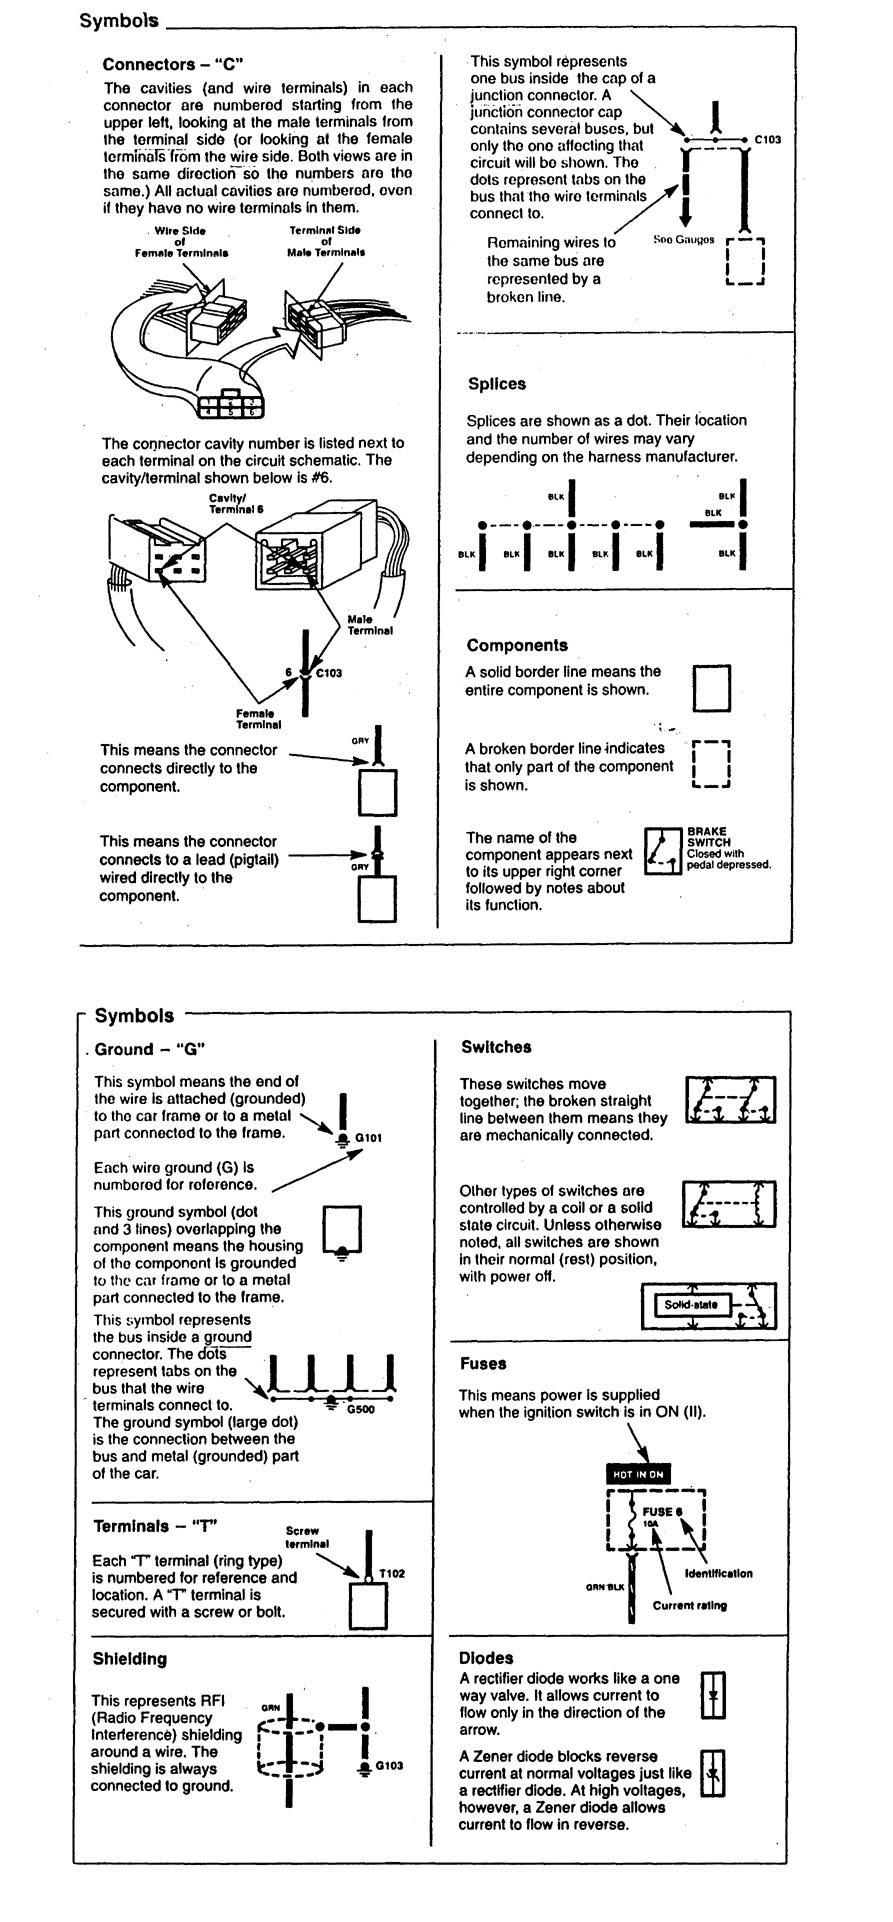 1997 Acura Cl Wiring Diagrams Library 99 Speaker Diagram Symbol Id Part 2